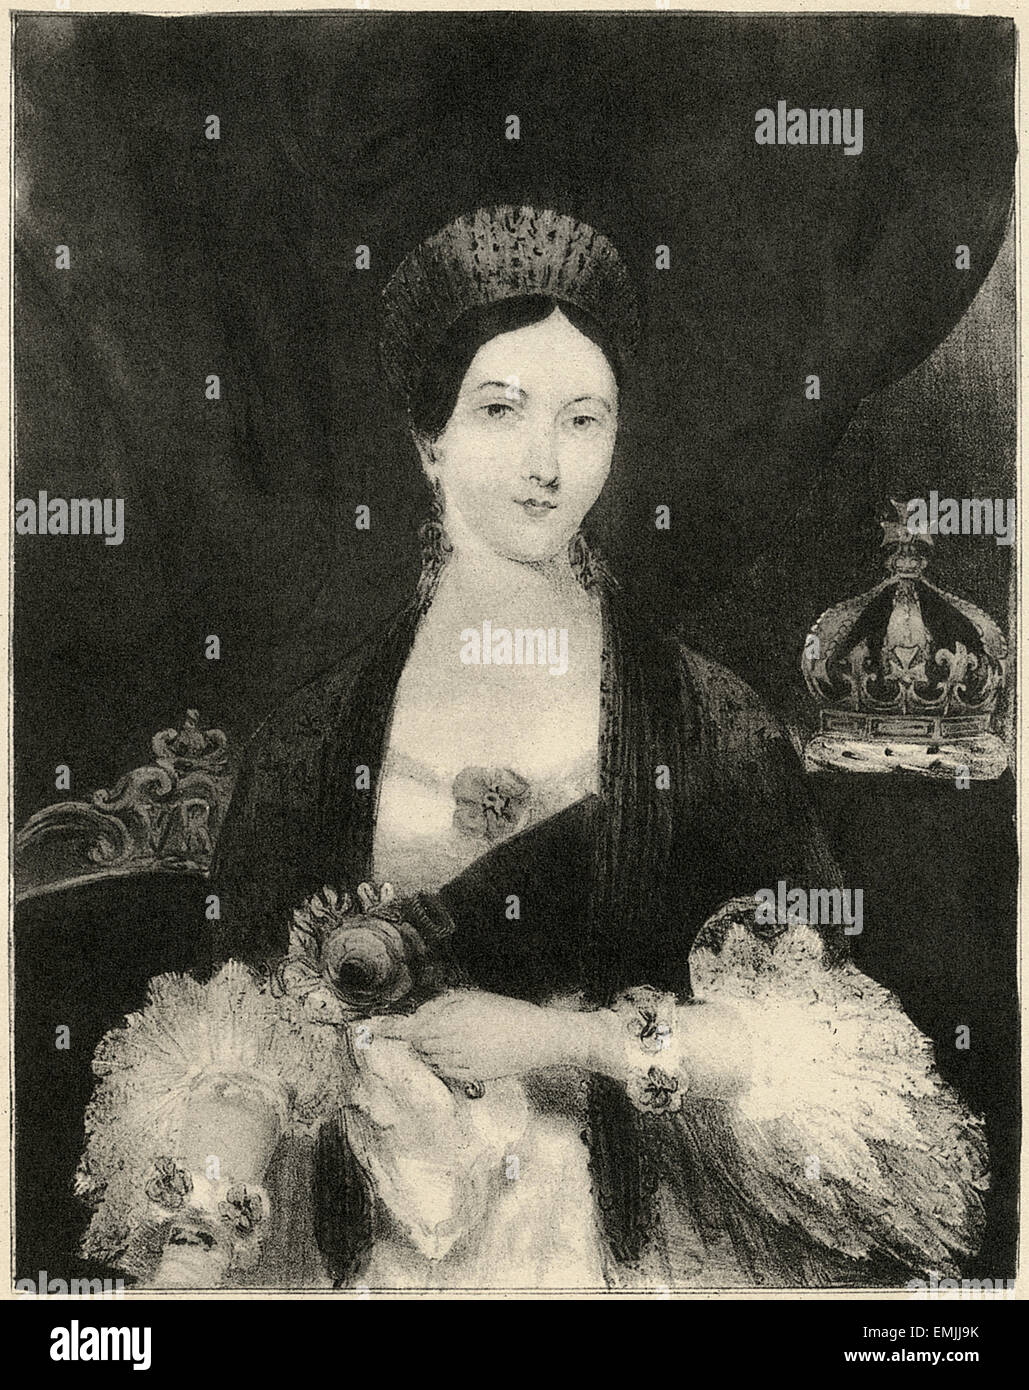 Queen Victoria, Nathaniel Currier, circa 1850's - Stock Image